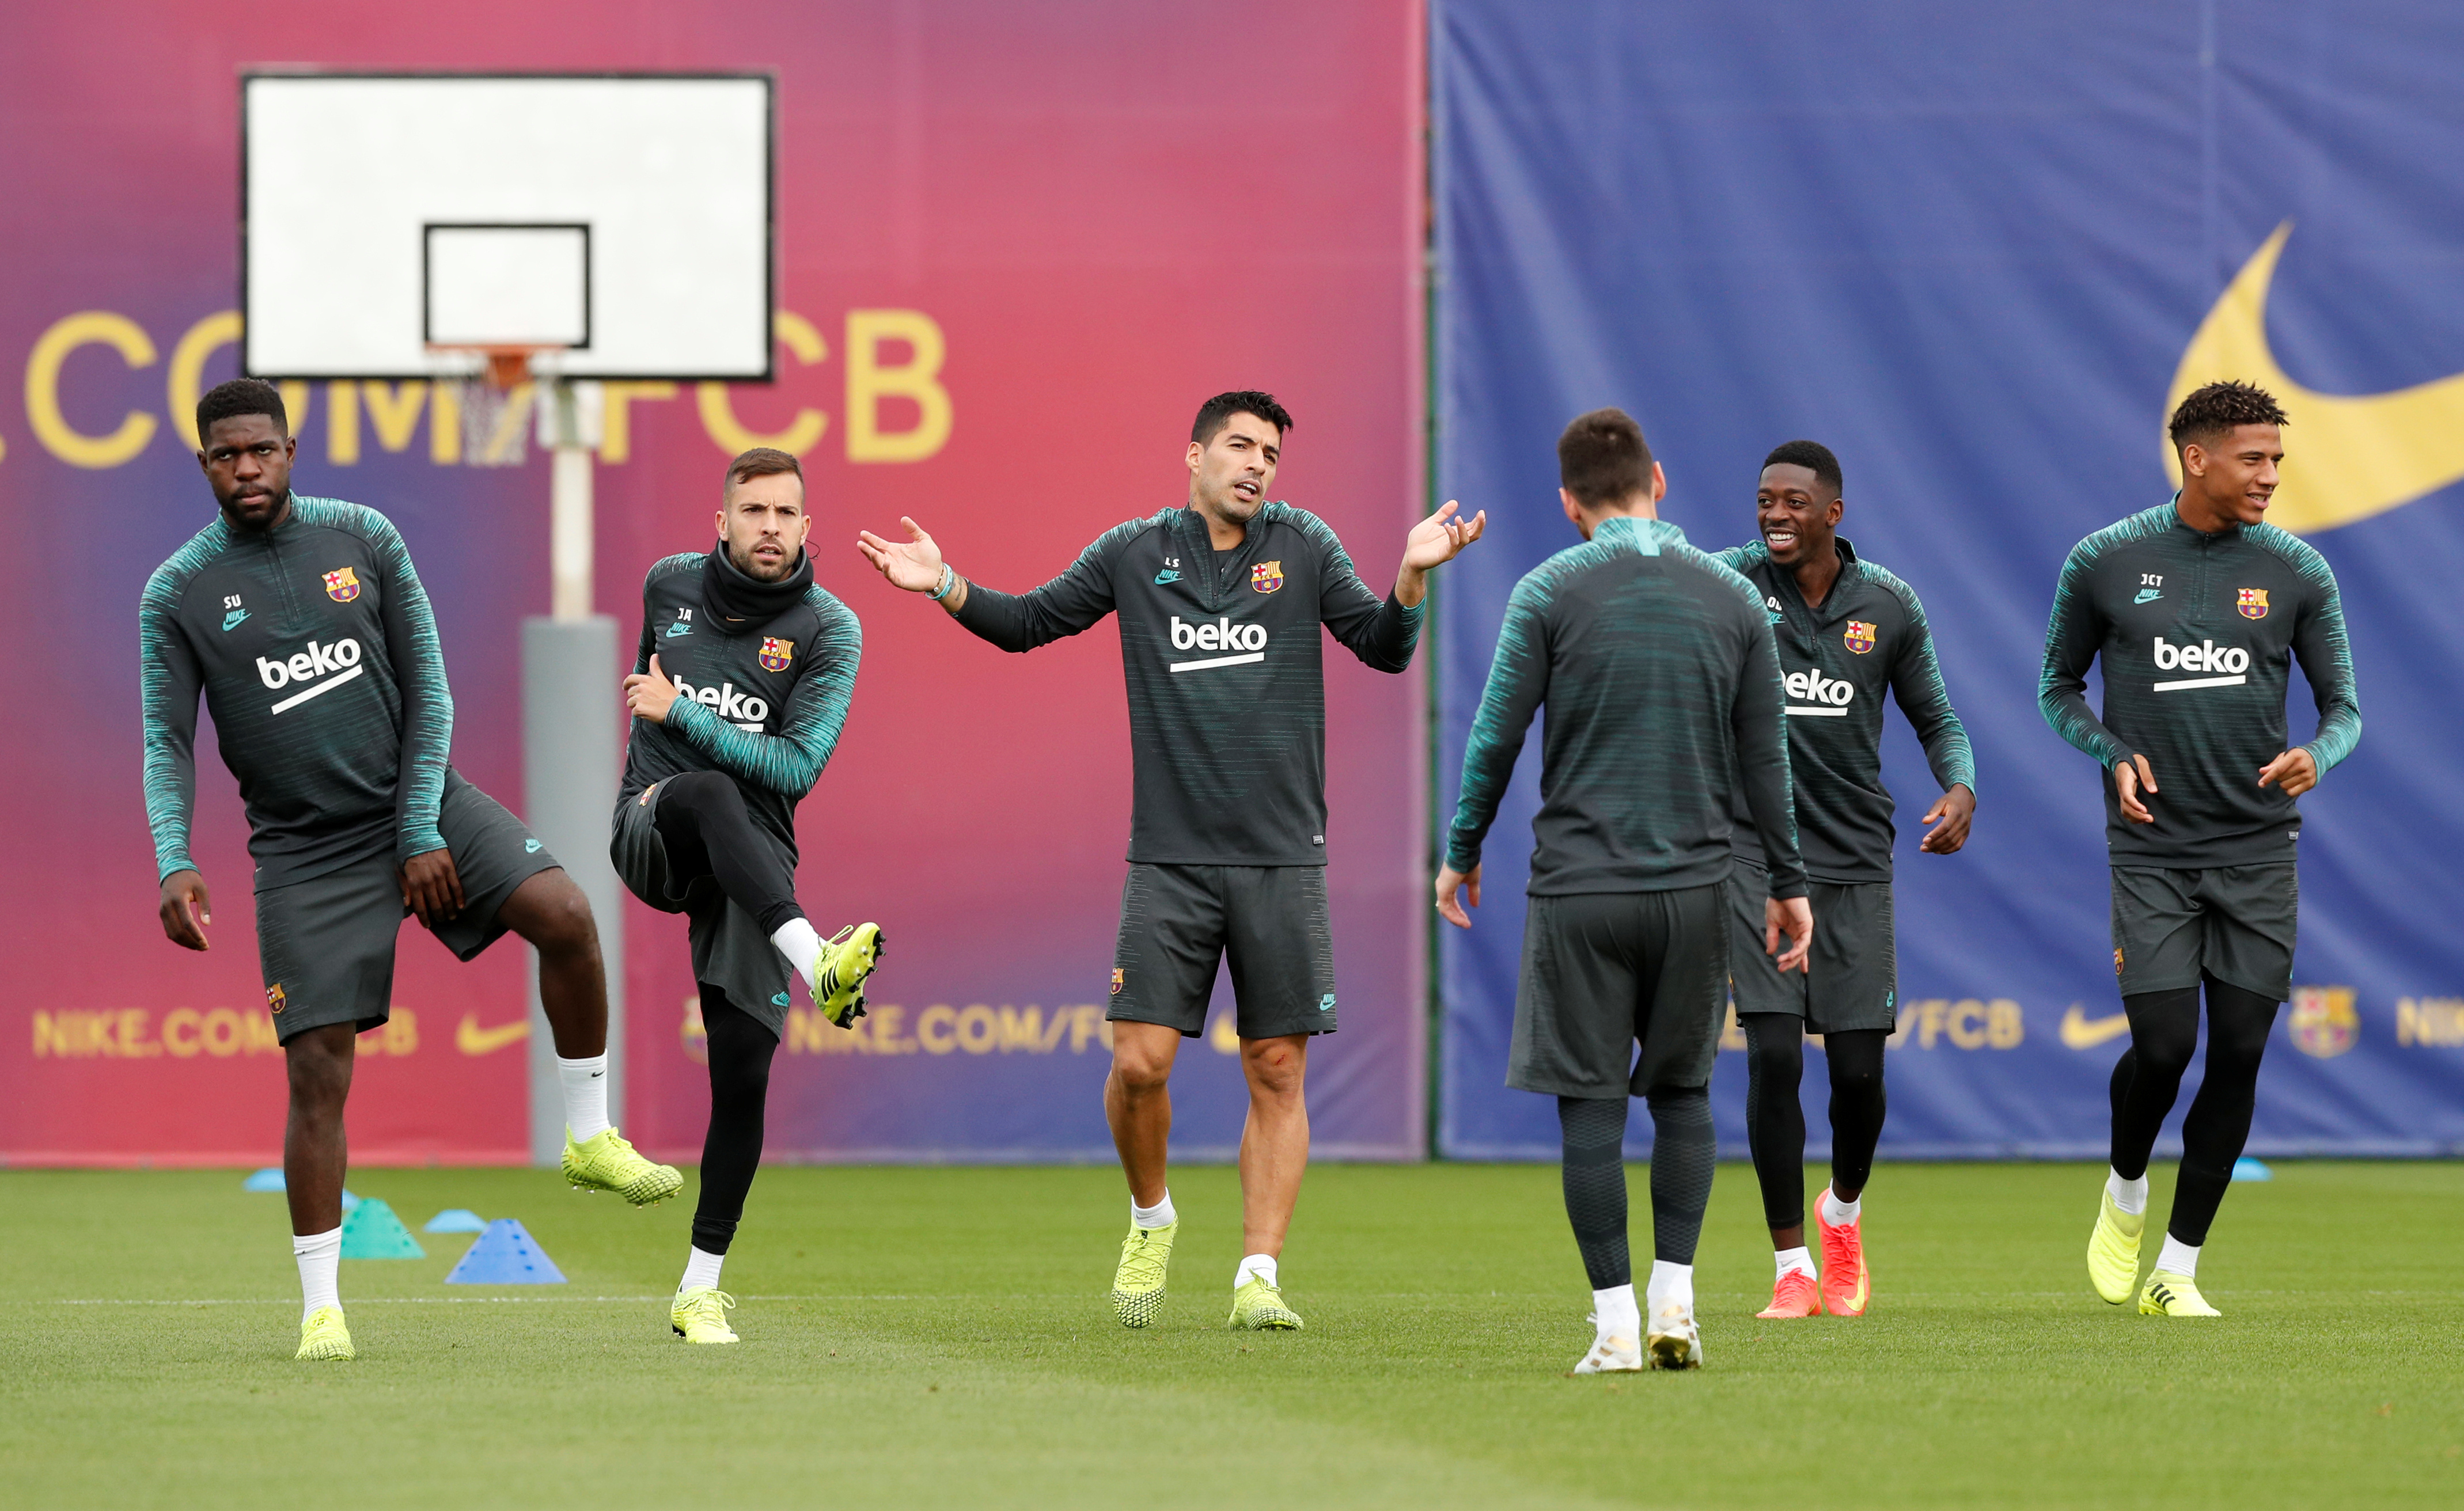 Who are the fastest players in the Barcelona team!